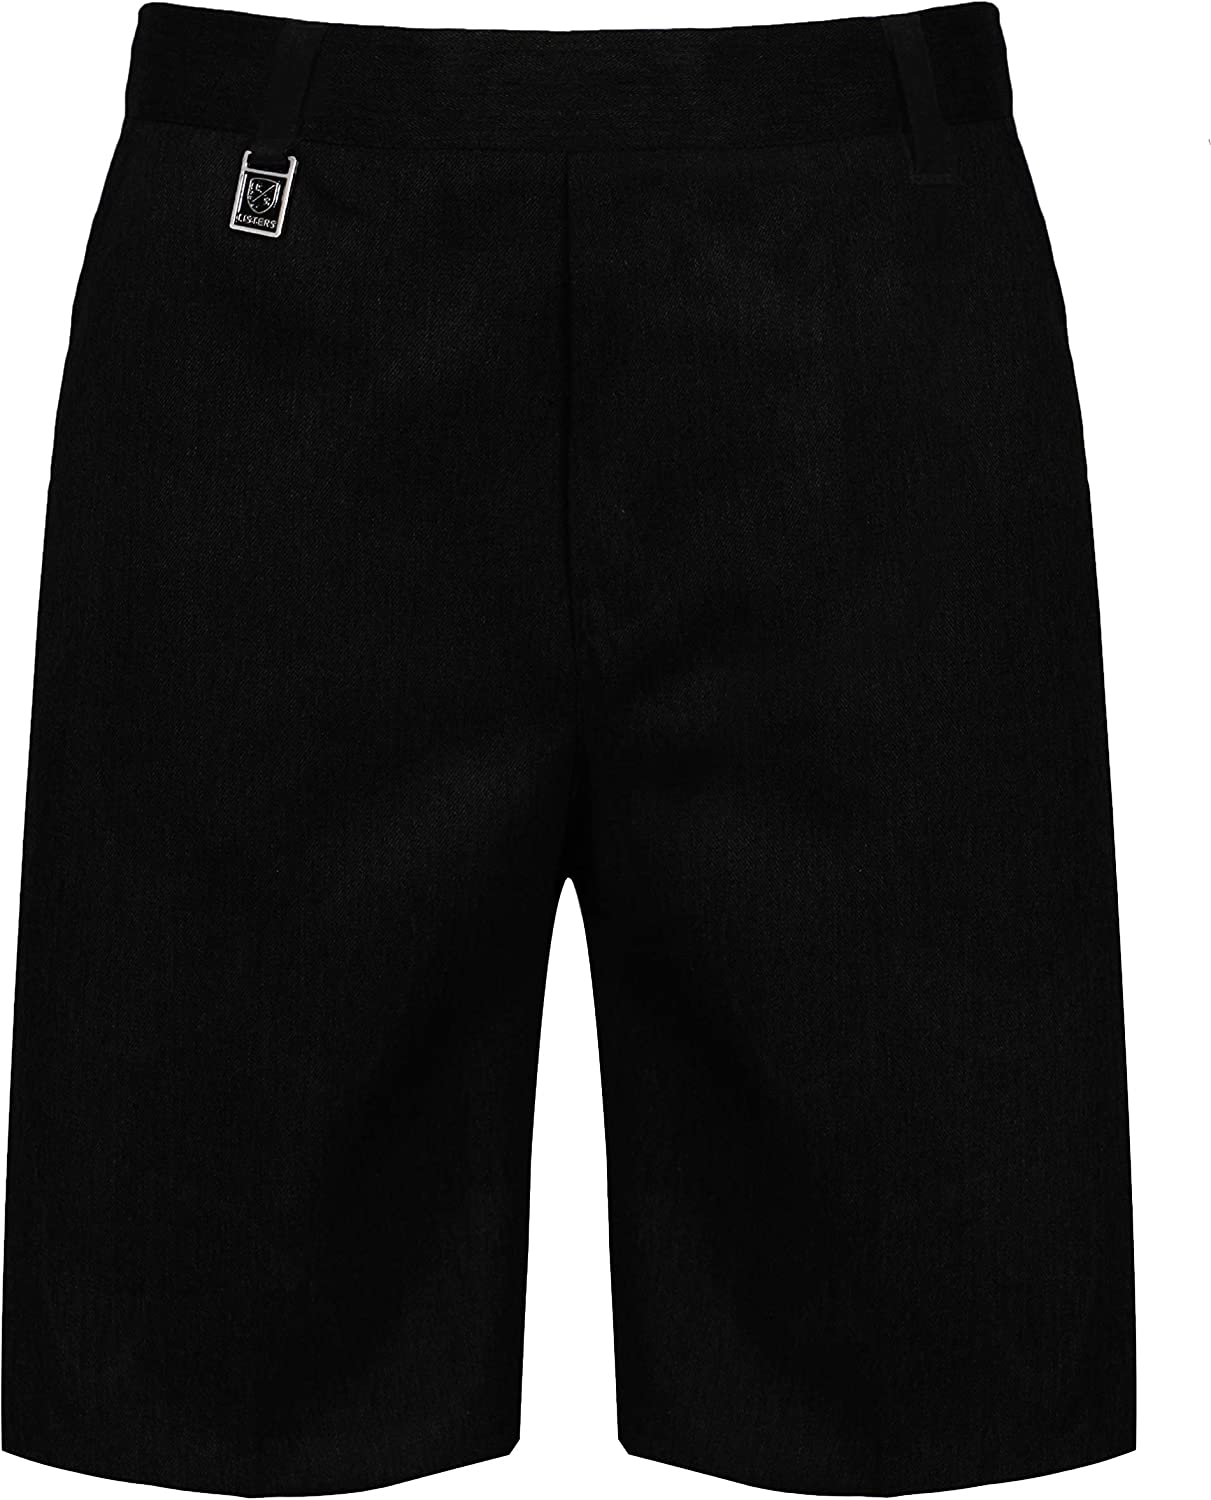 Listers Schoolwear Boys Pull Up School Elasticated Trousers Black Grey Navy Age 2 3 4 5 6 7 8 9 10 11 12 13